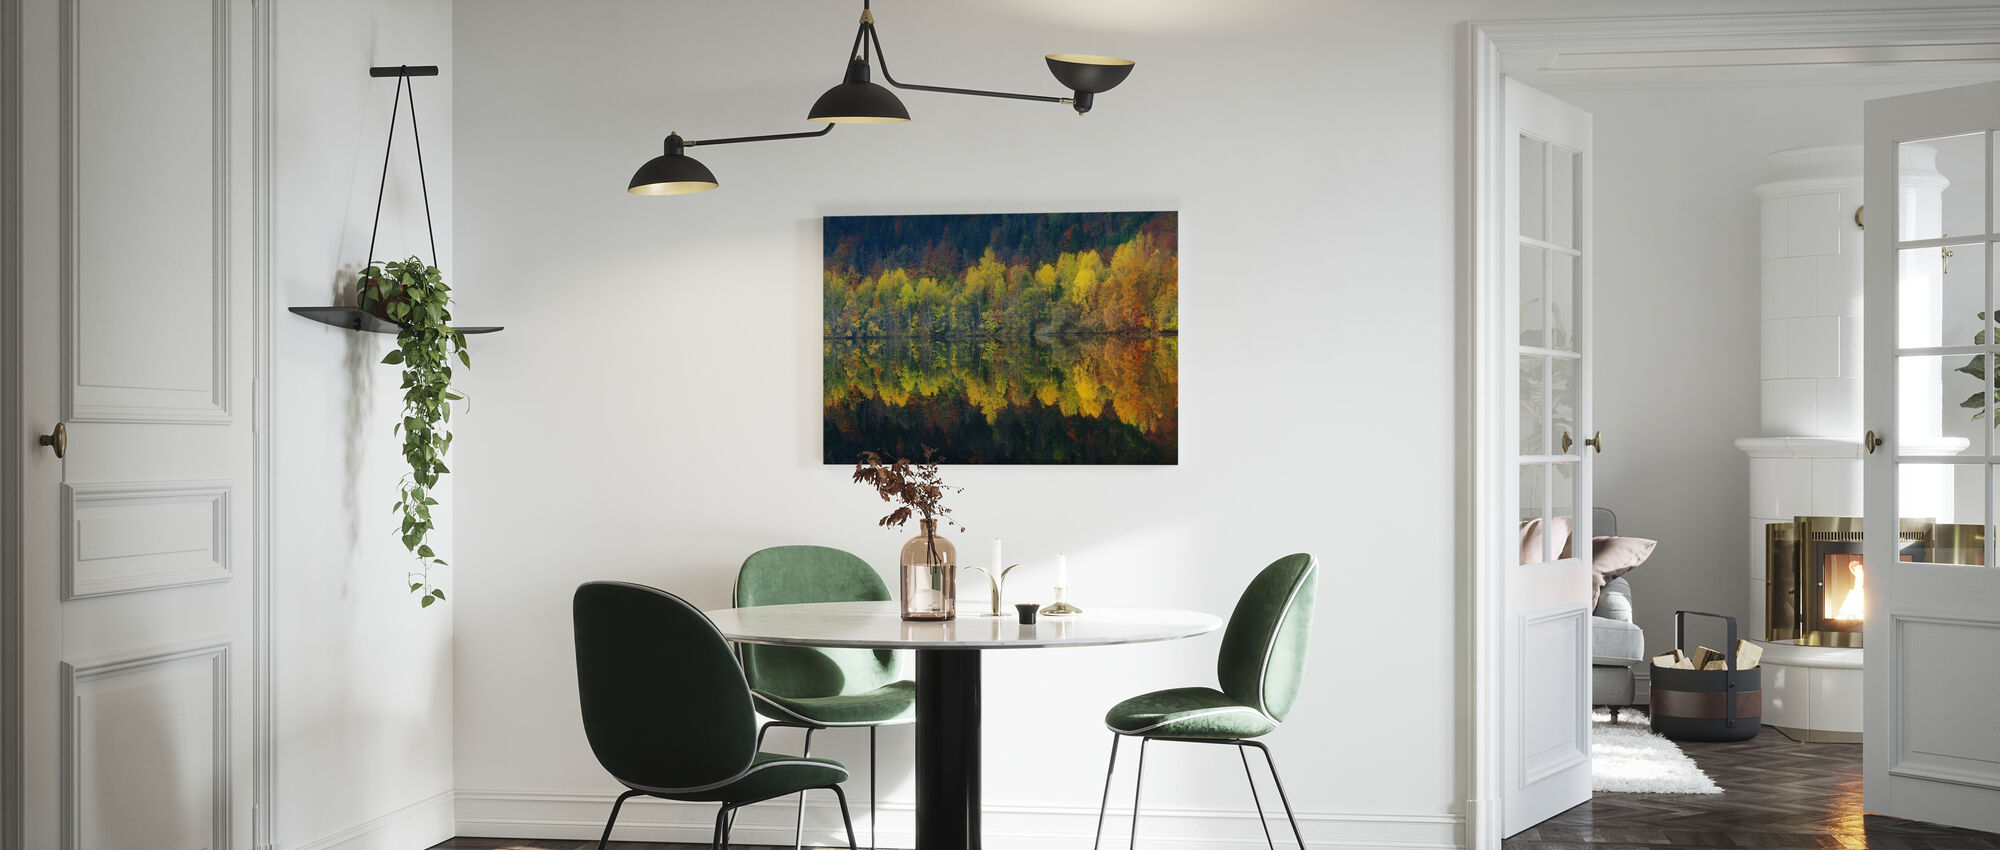 Autumnal Silence - Canvas print - Kitchen